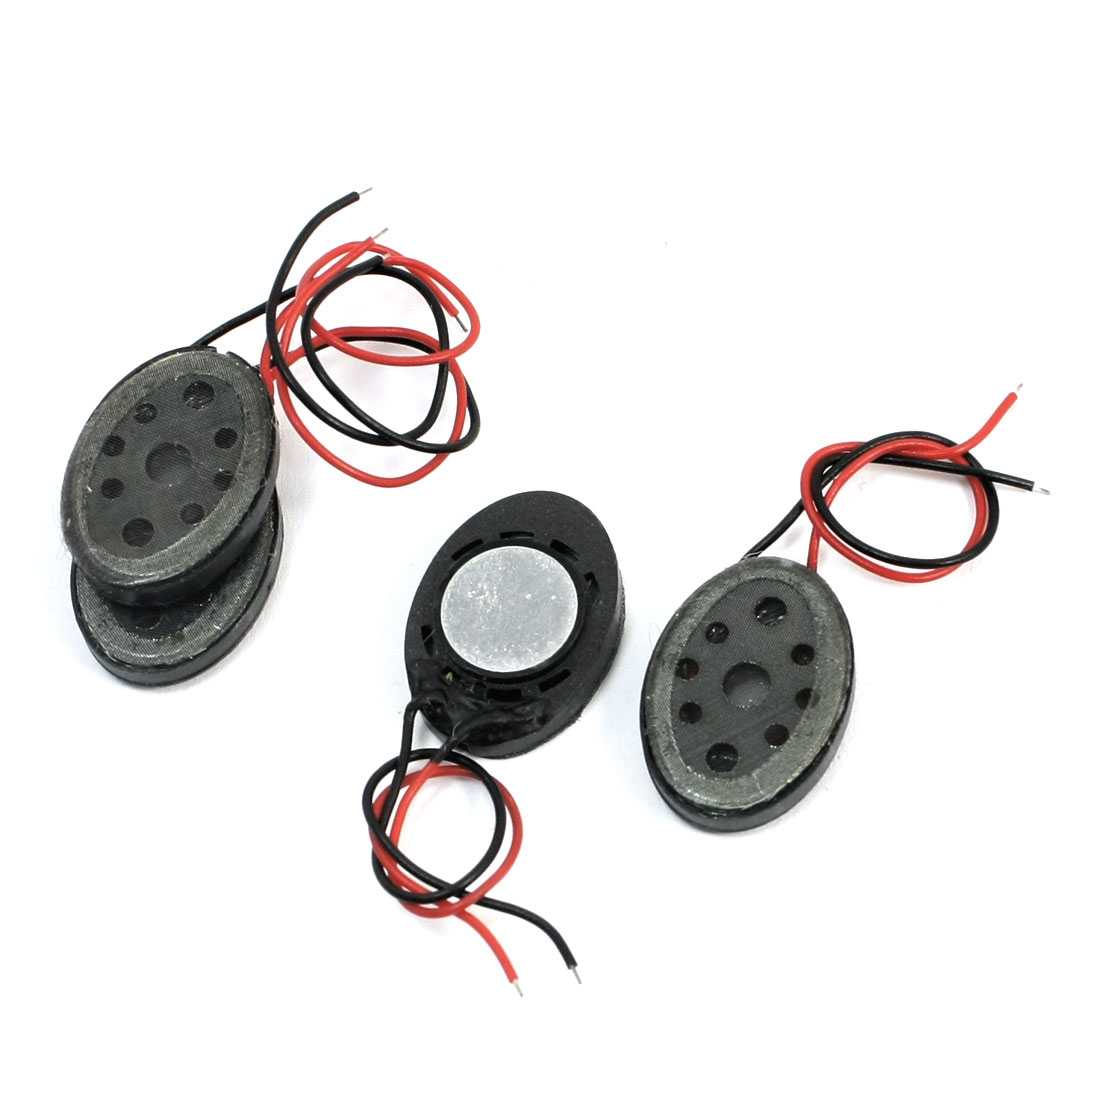 4Pcs 1Watt 8 Ohm Oval Shape Plastic Case Magnetic Audio Speaker Loudspeaker Amplifier Trumpet for Tablet PC